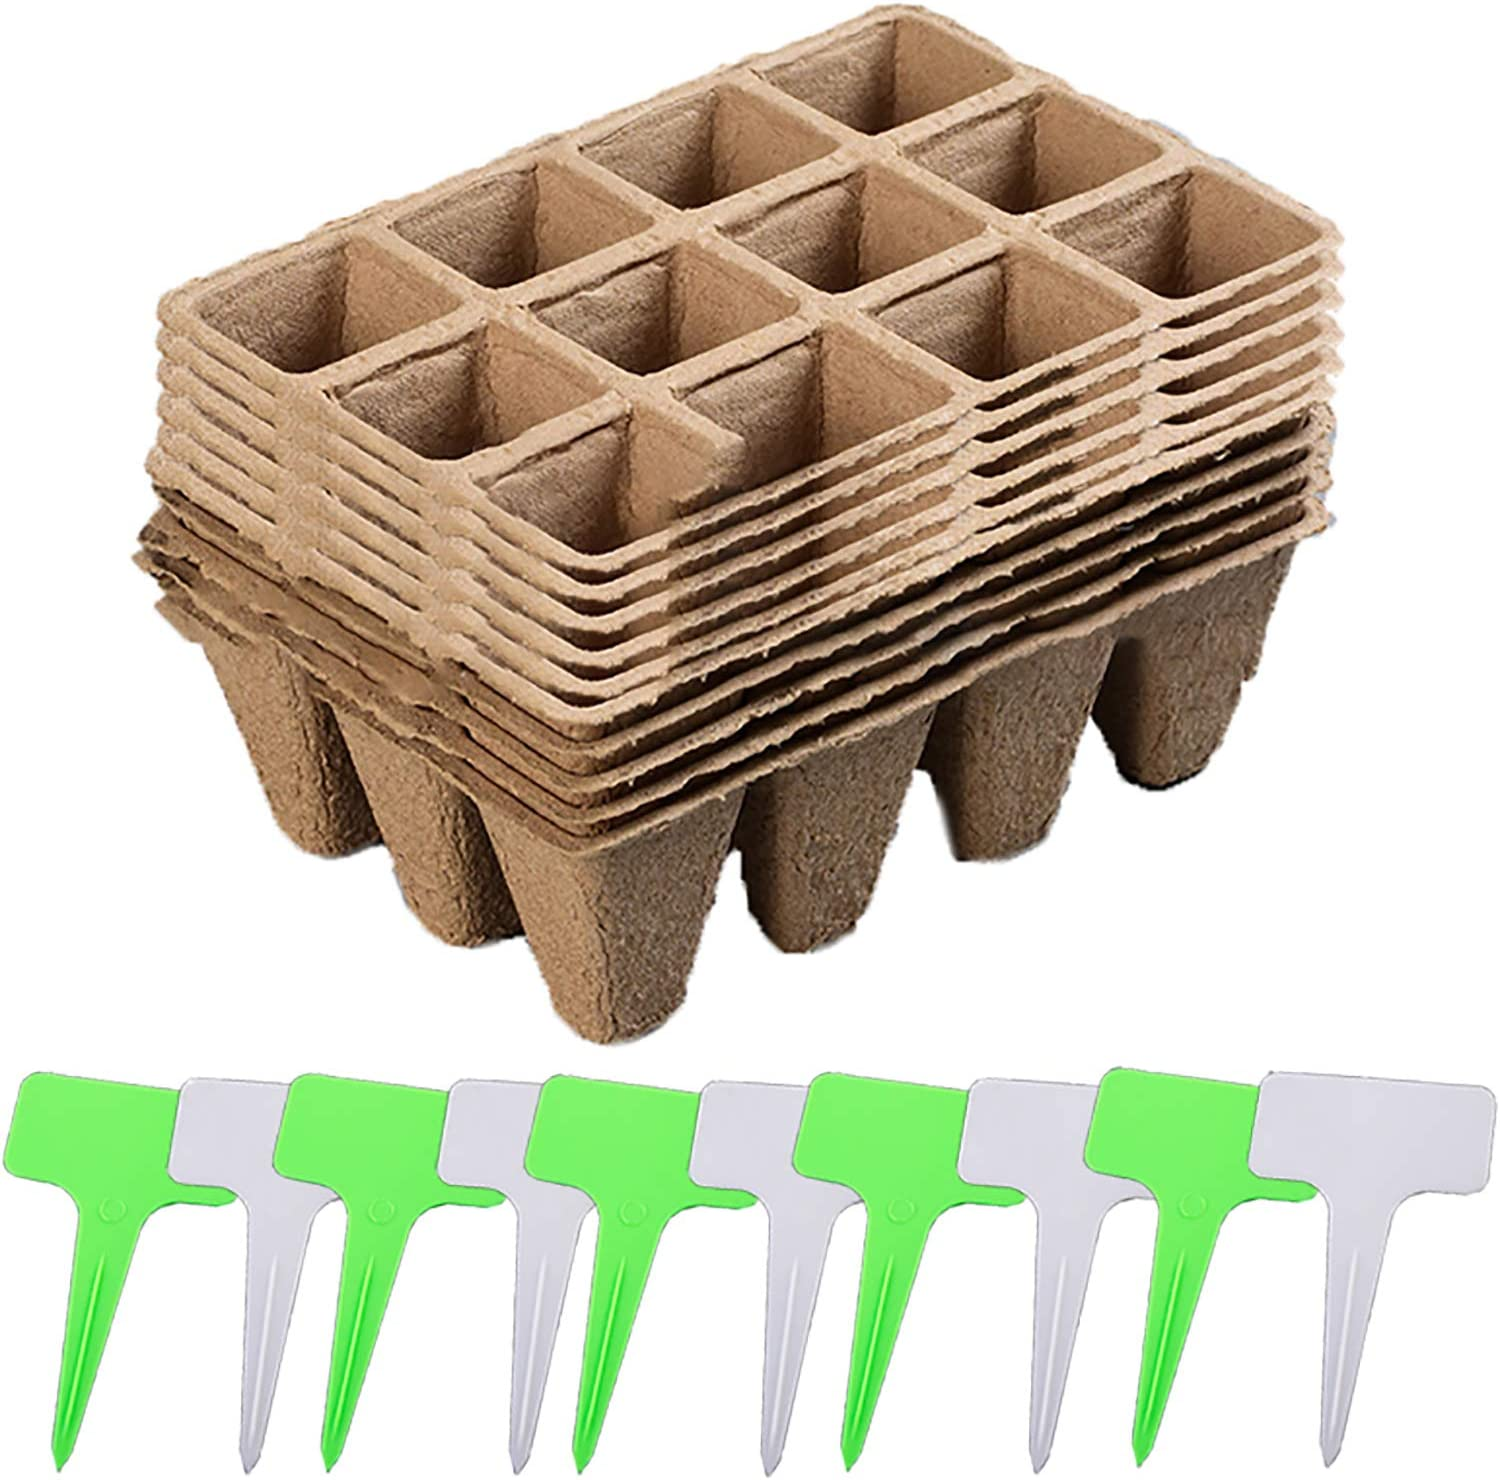 ZT Seedlings Starter Trays 10 Pcs Biodegradable 12 Grids Peat Pots Starter Tray for Gardening Seed Eco-Friendly Organic Plant Starting Pots Germination Container with Plant Labels 20 Pcs